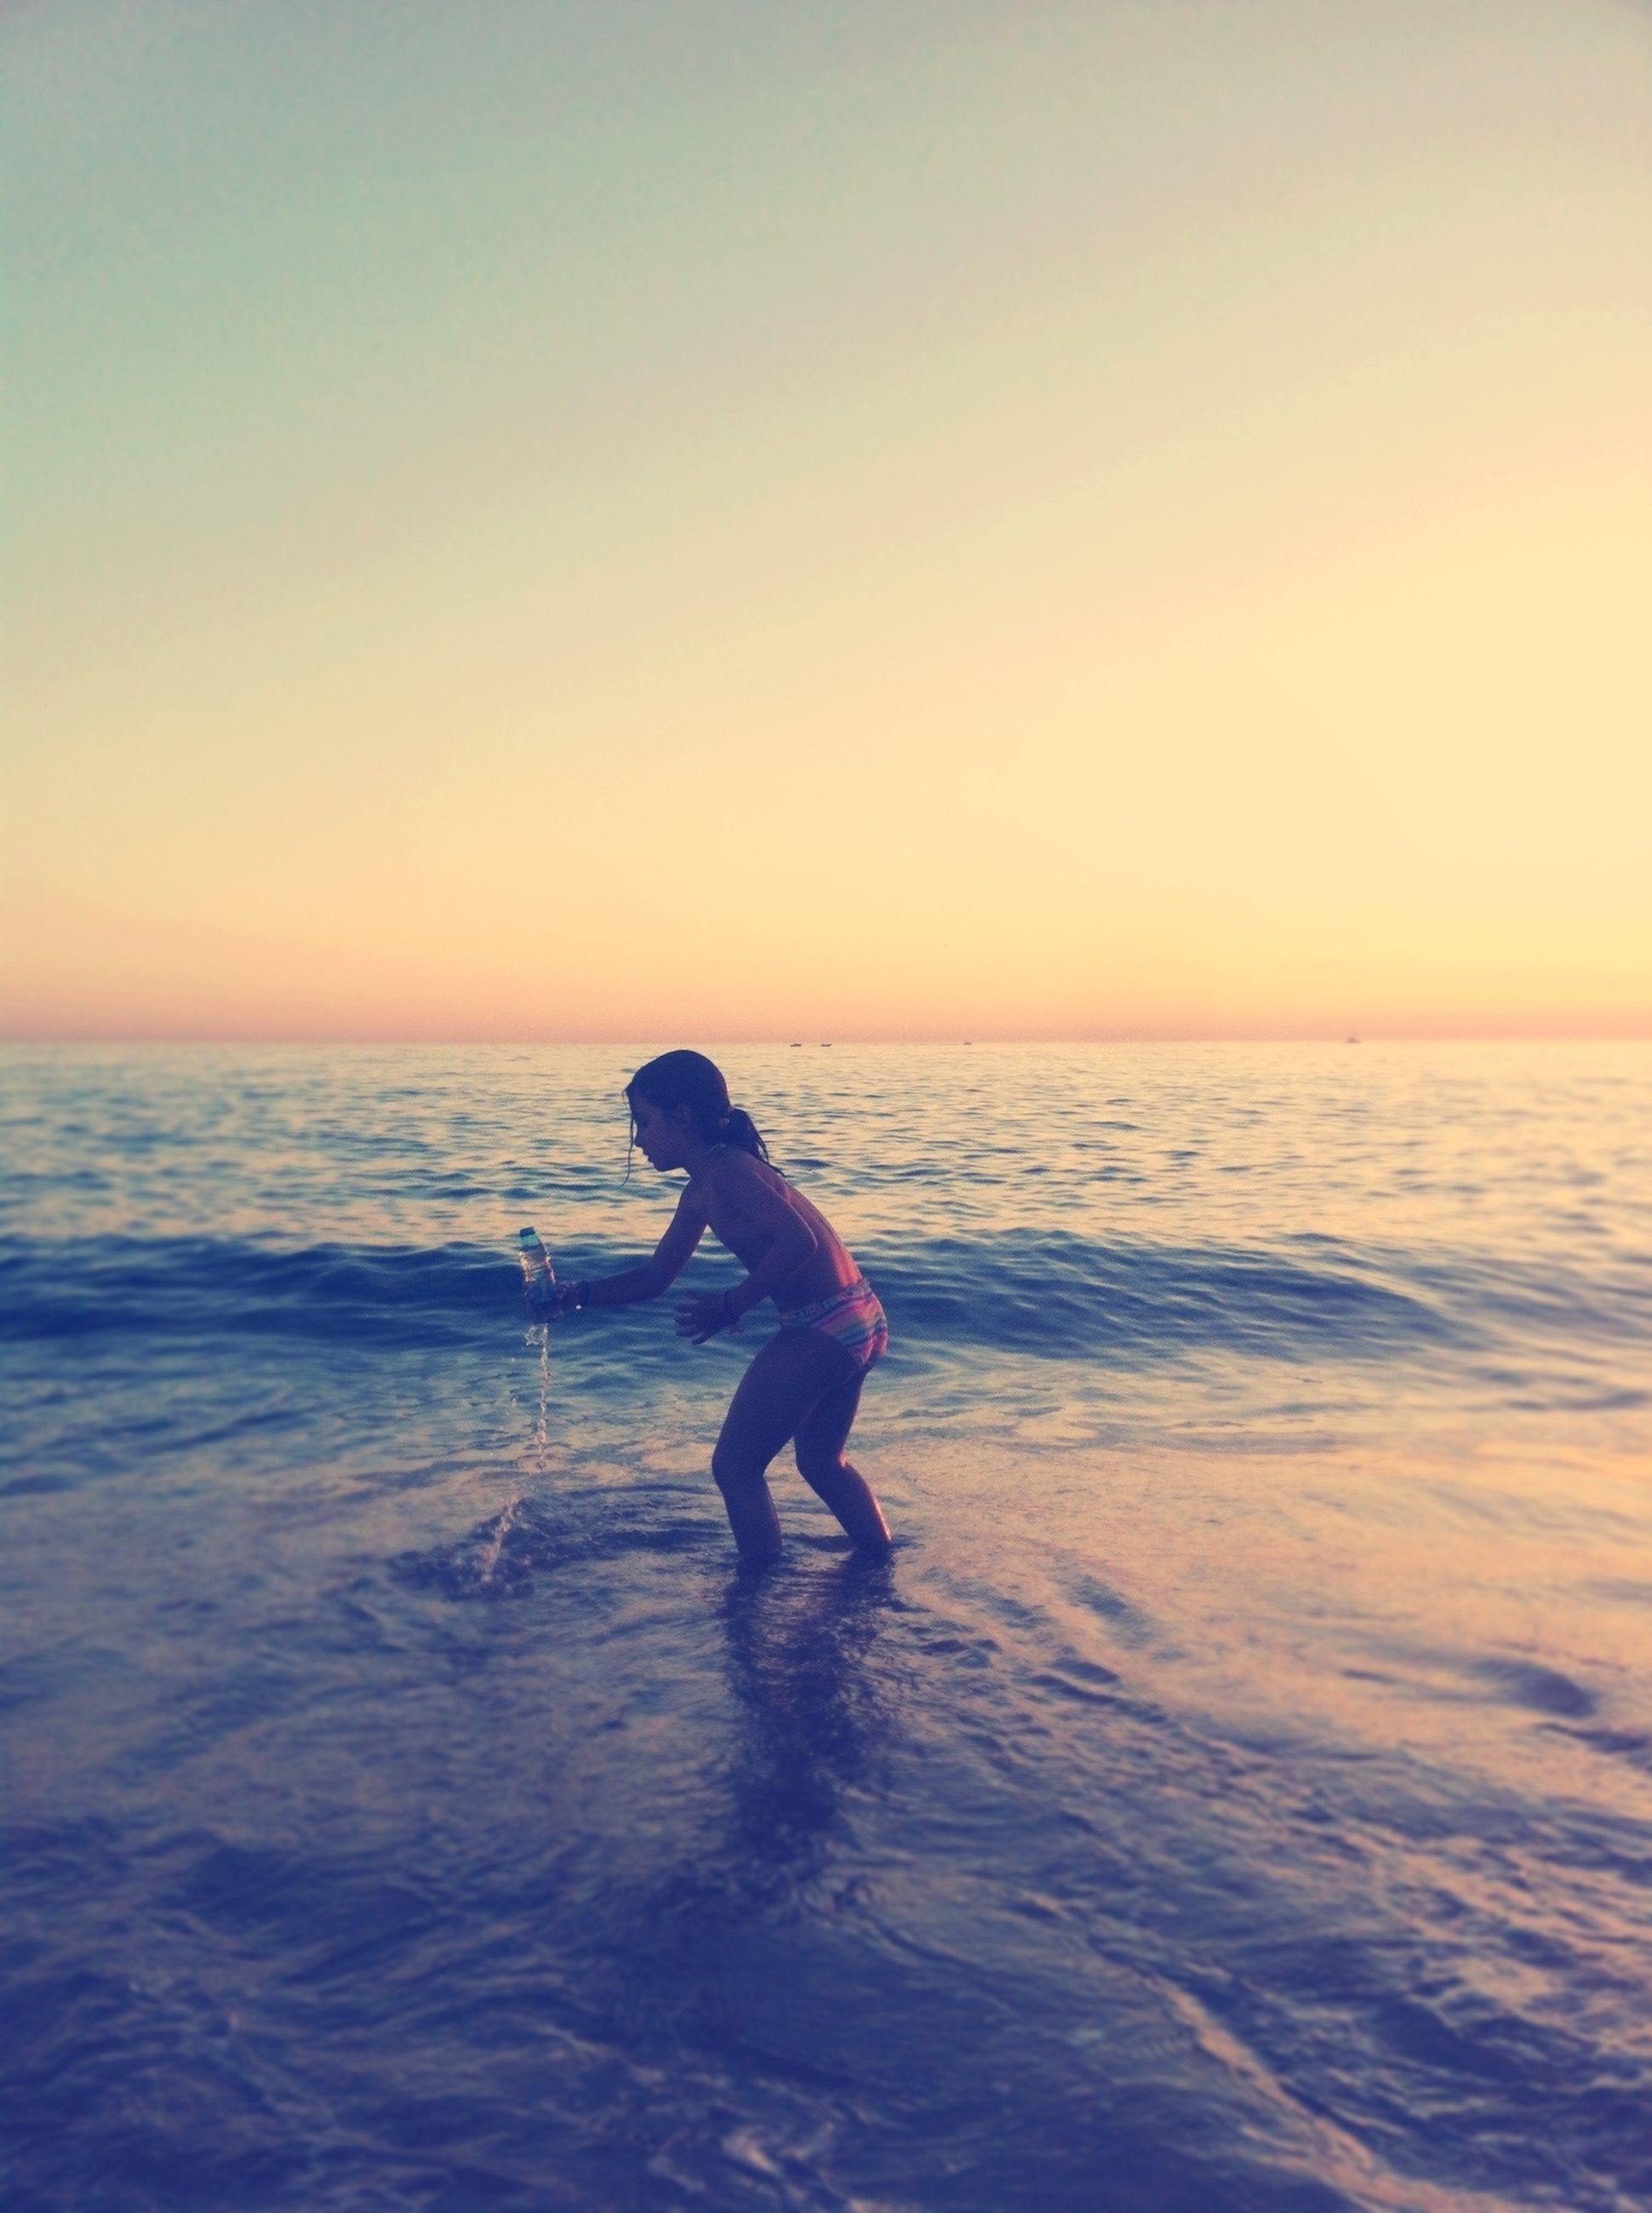 sea, water, horizon over water, beach, full length, sunset, leisure activity, lifestyles, shore, clear sky, scenics, tranquil scene, tranquility, copy space, beauty in nature, wave, nature, vacations